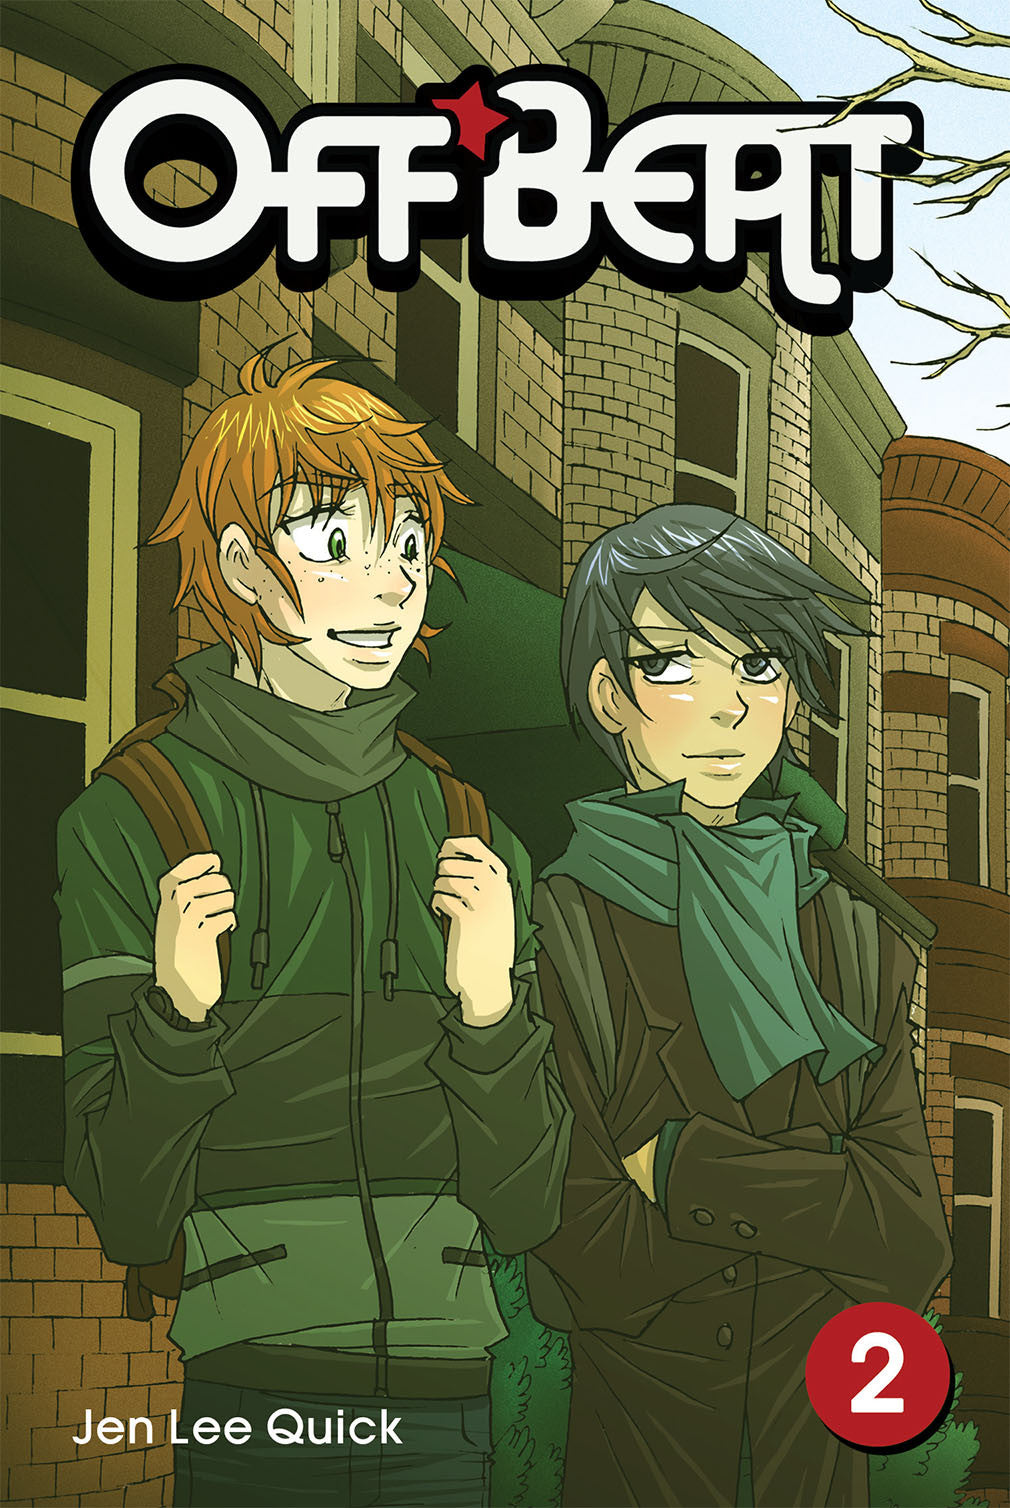 Off*Beat - Volume 2 - Ebook from Off*Beat - Webcomic Merchandise